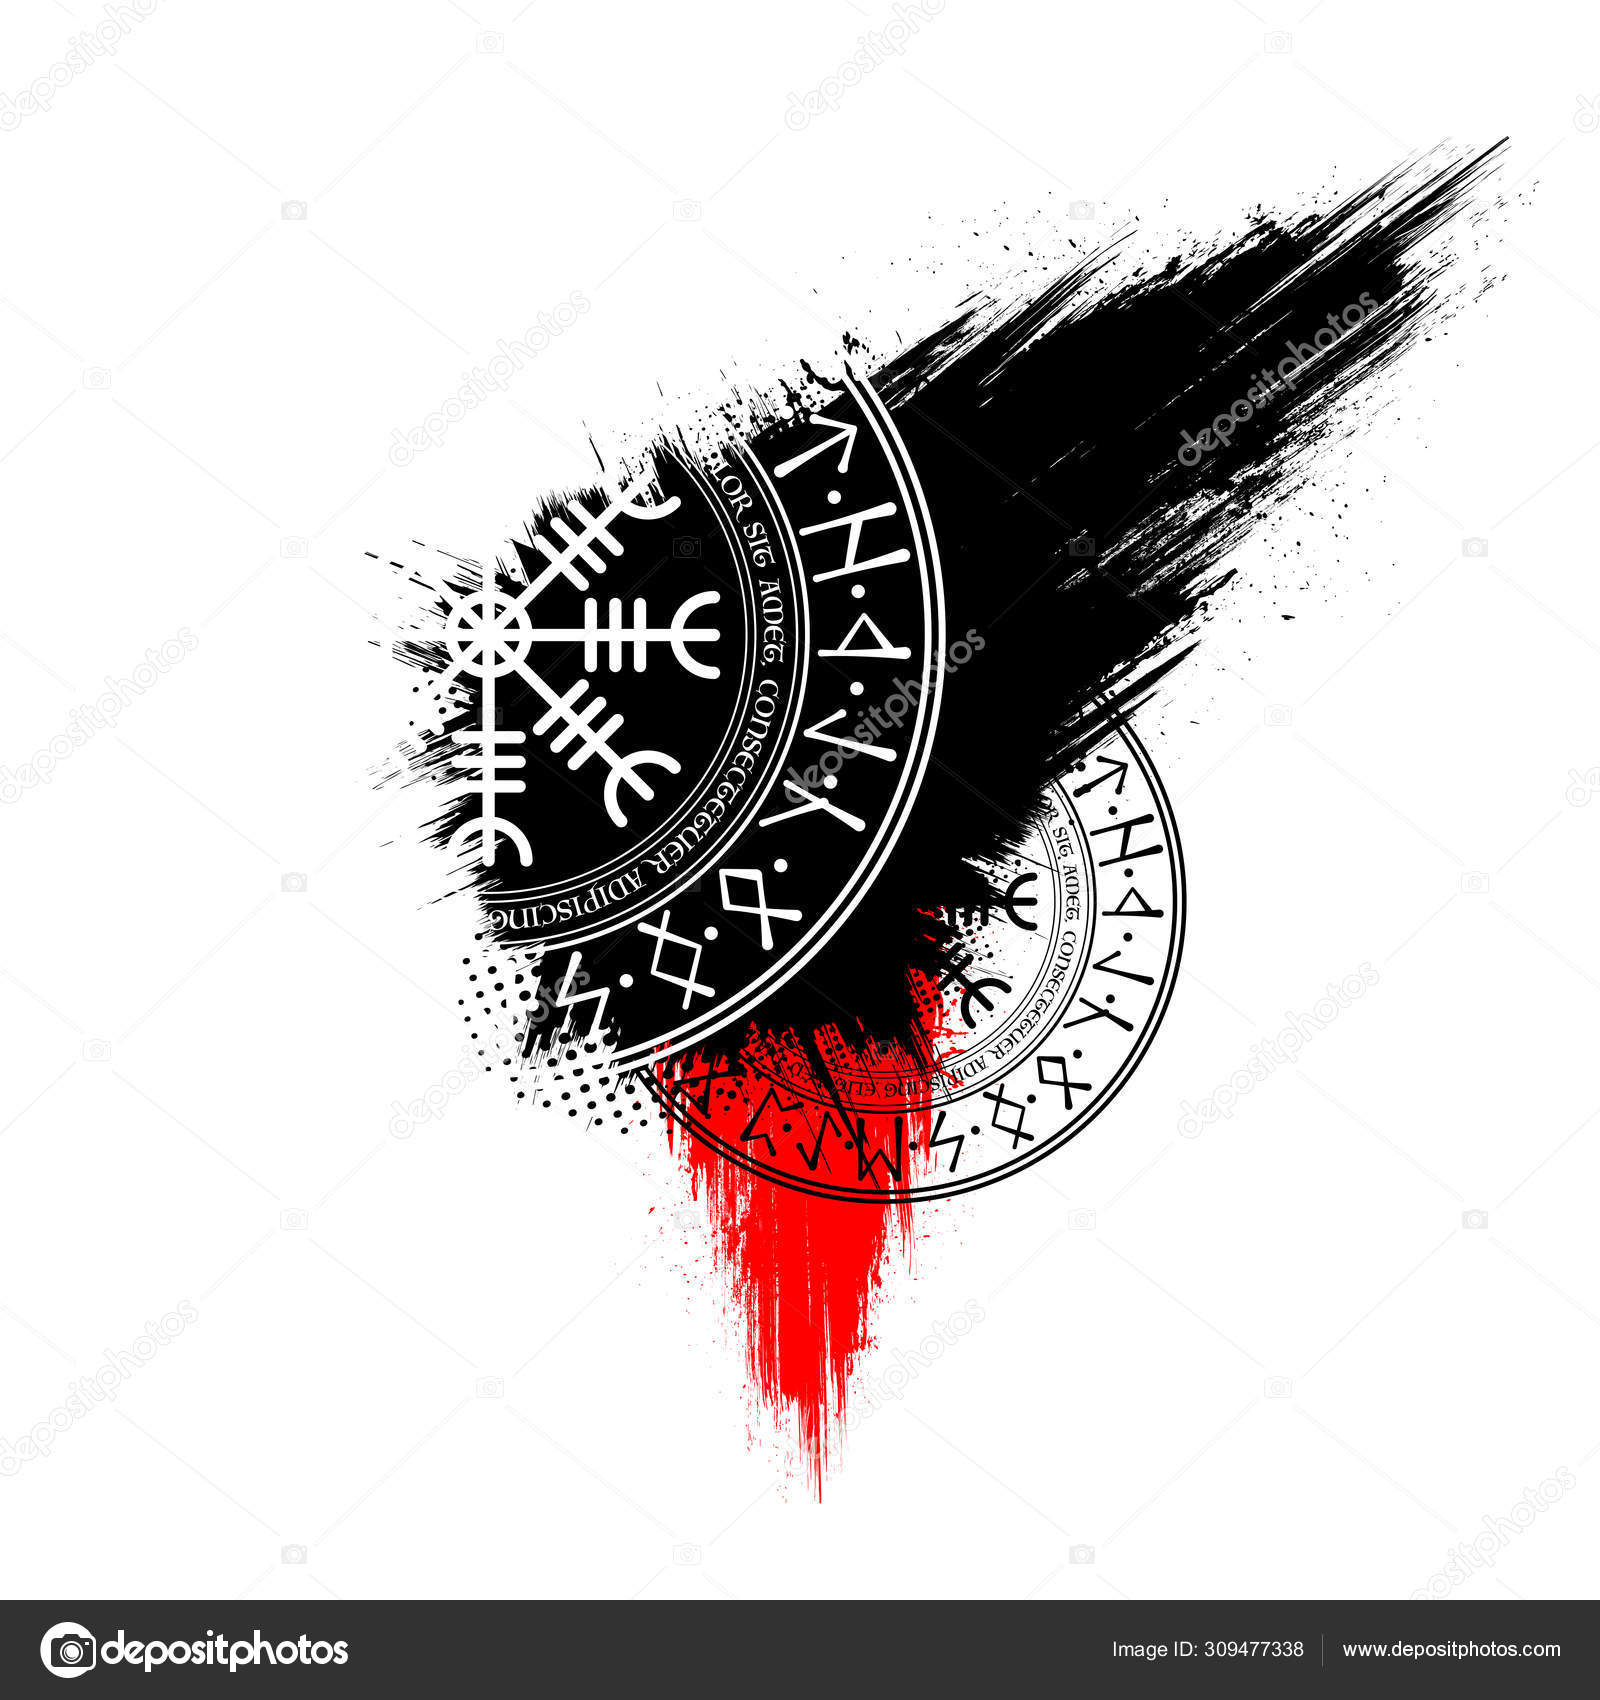 Scandinavian Grunge Symbols Wallpaper Stock Vector